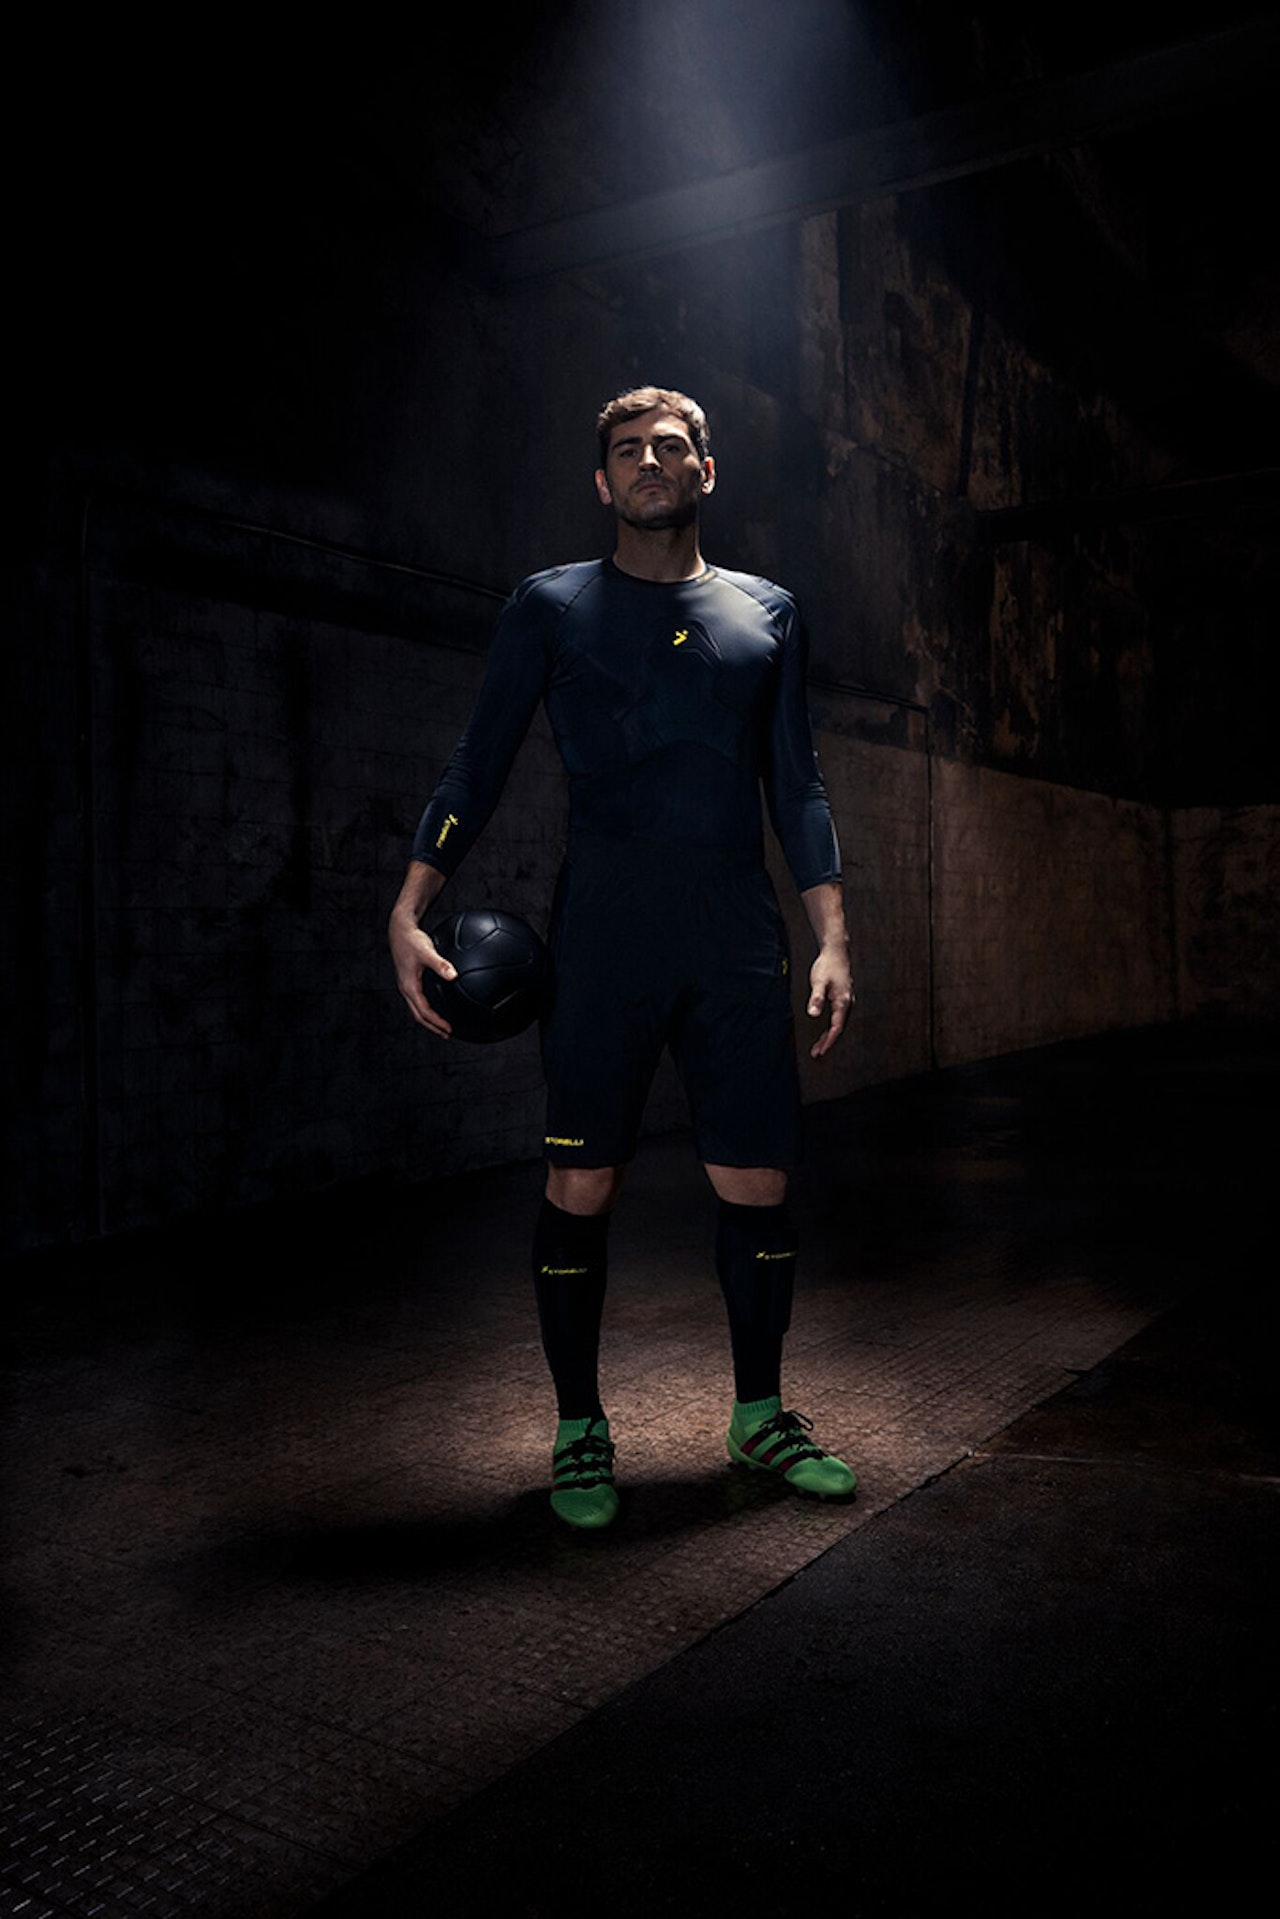 ´The Dark Side of the Beautiful Game' - Storelli